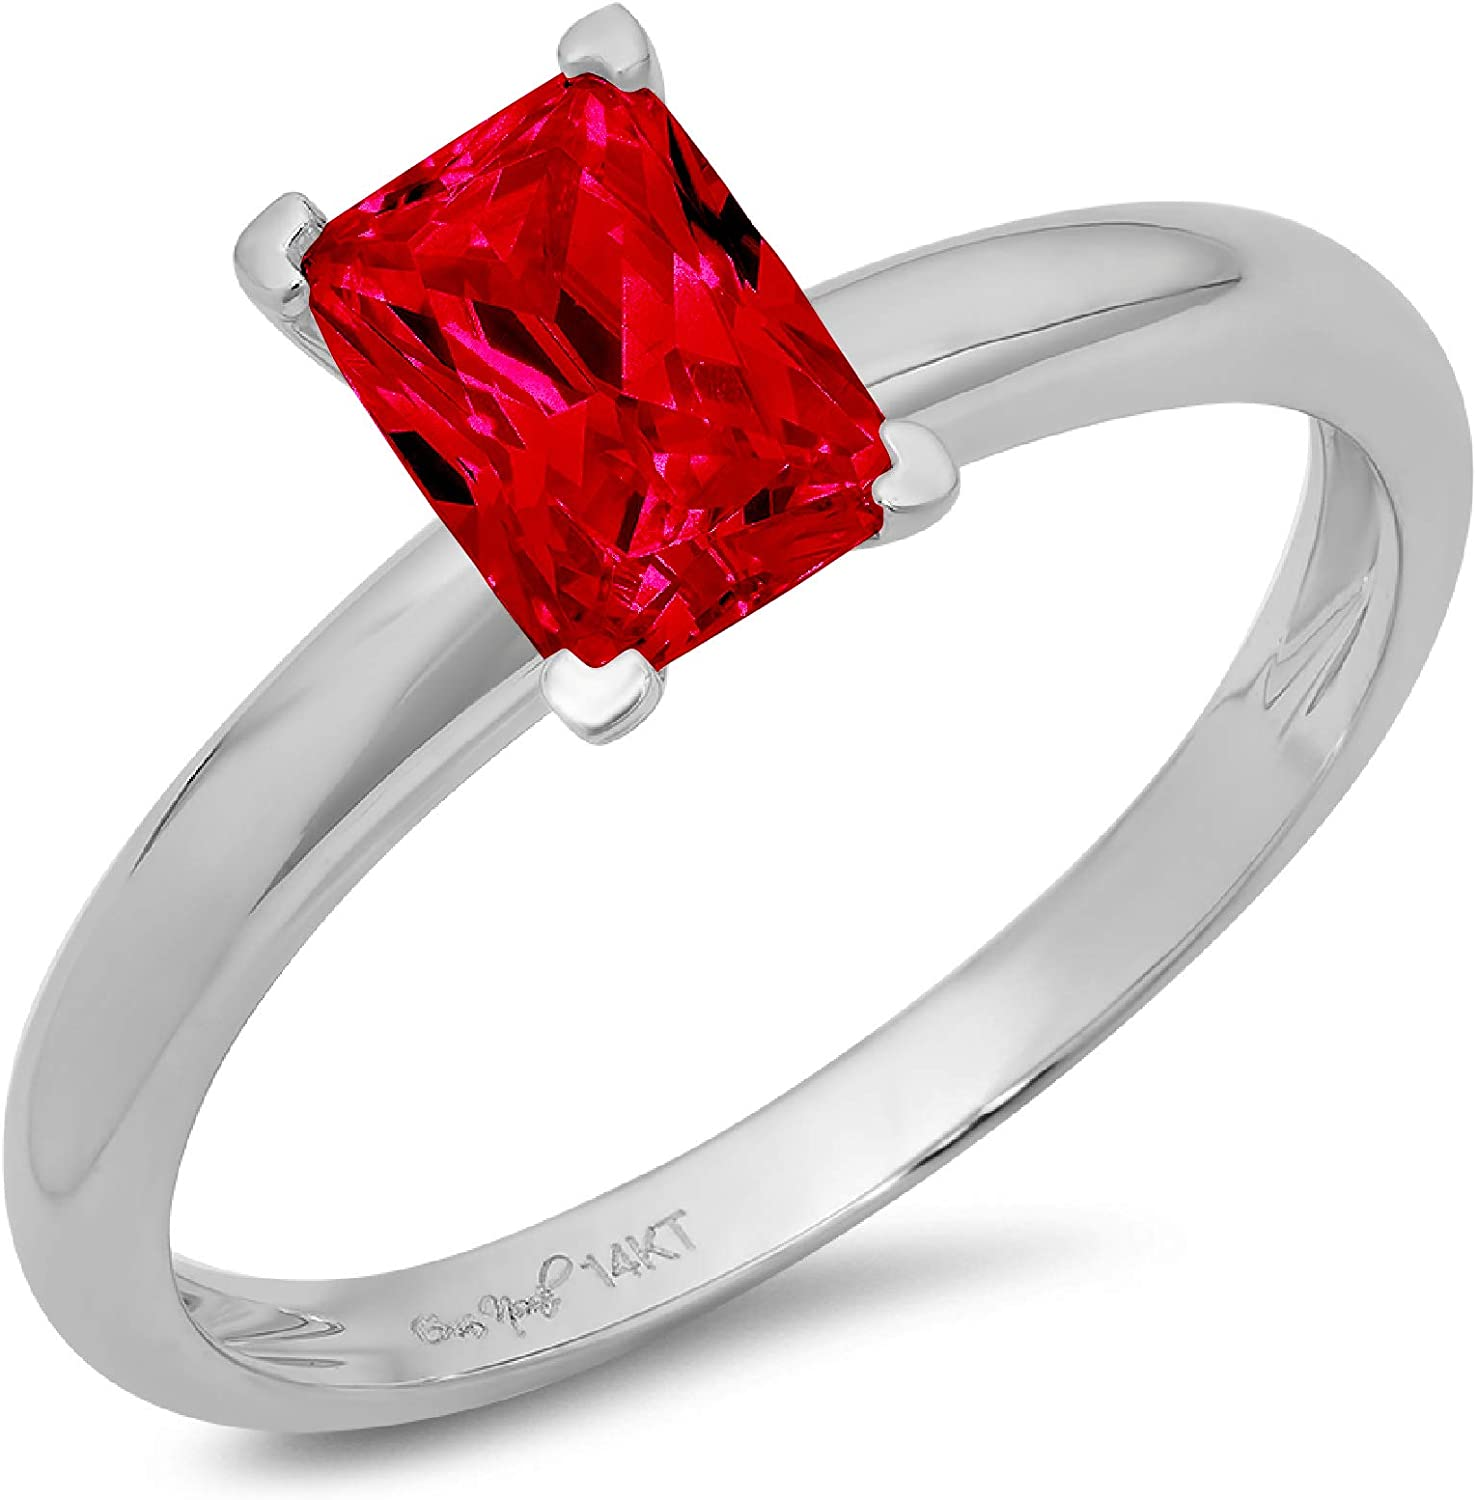 1.0 ct Brilliant Emerald Cut Solitaire Flawless Simulated CZ Red Ruby Ideal VVS1 4-Prong Engagement Wedding Bridal Promise Anniversary Designer Ring Solid 14k White Gold for Women